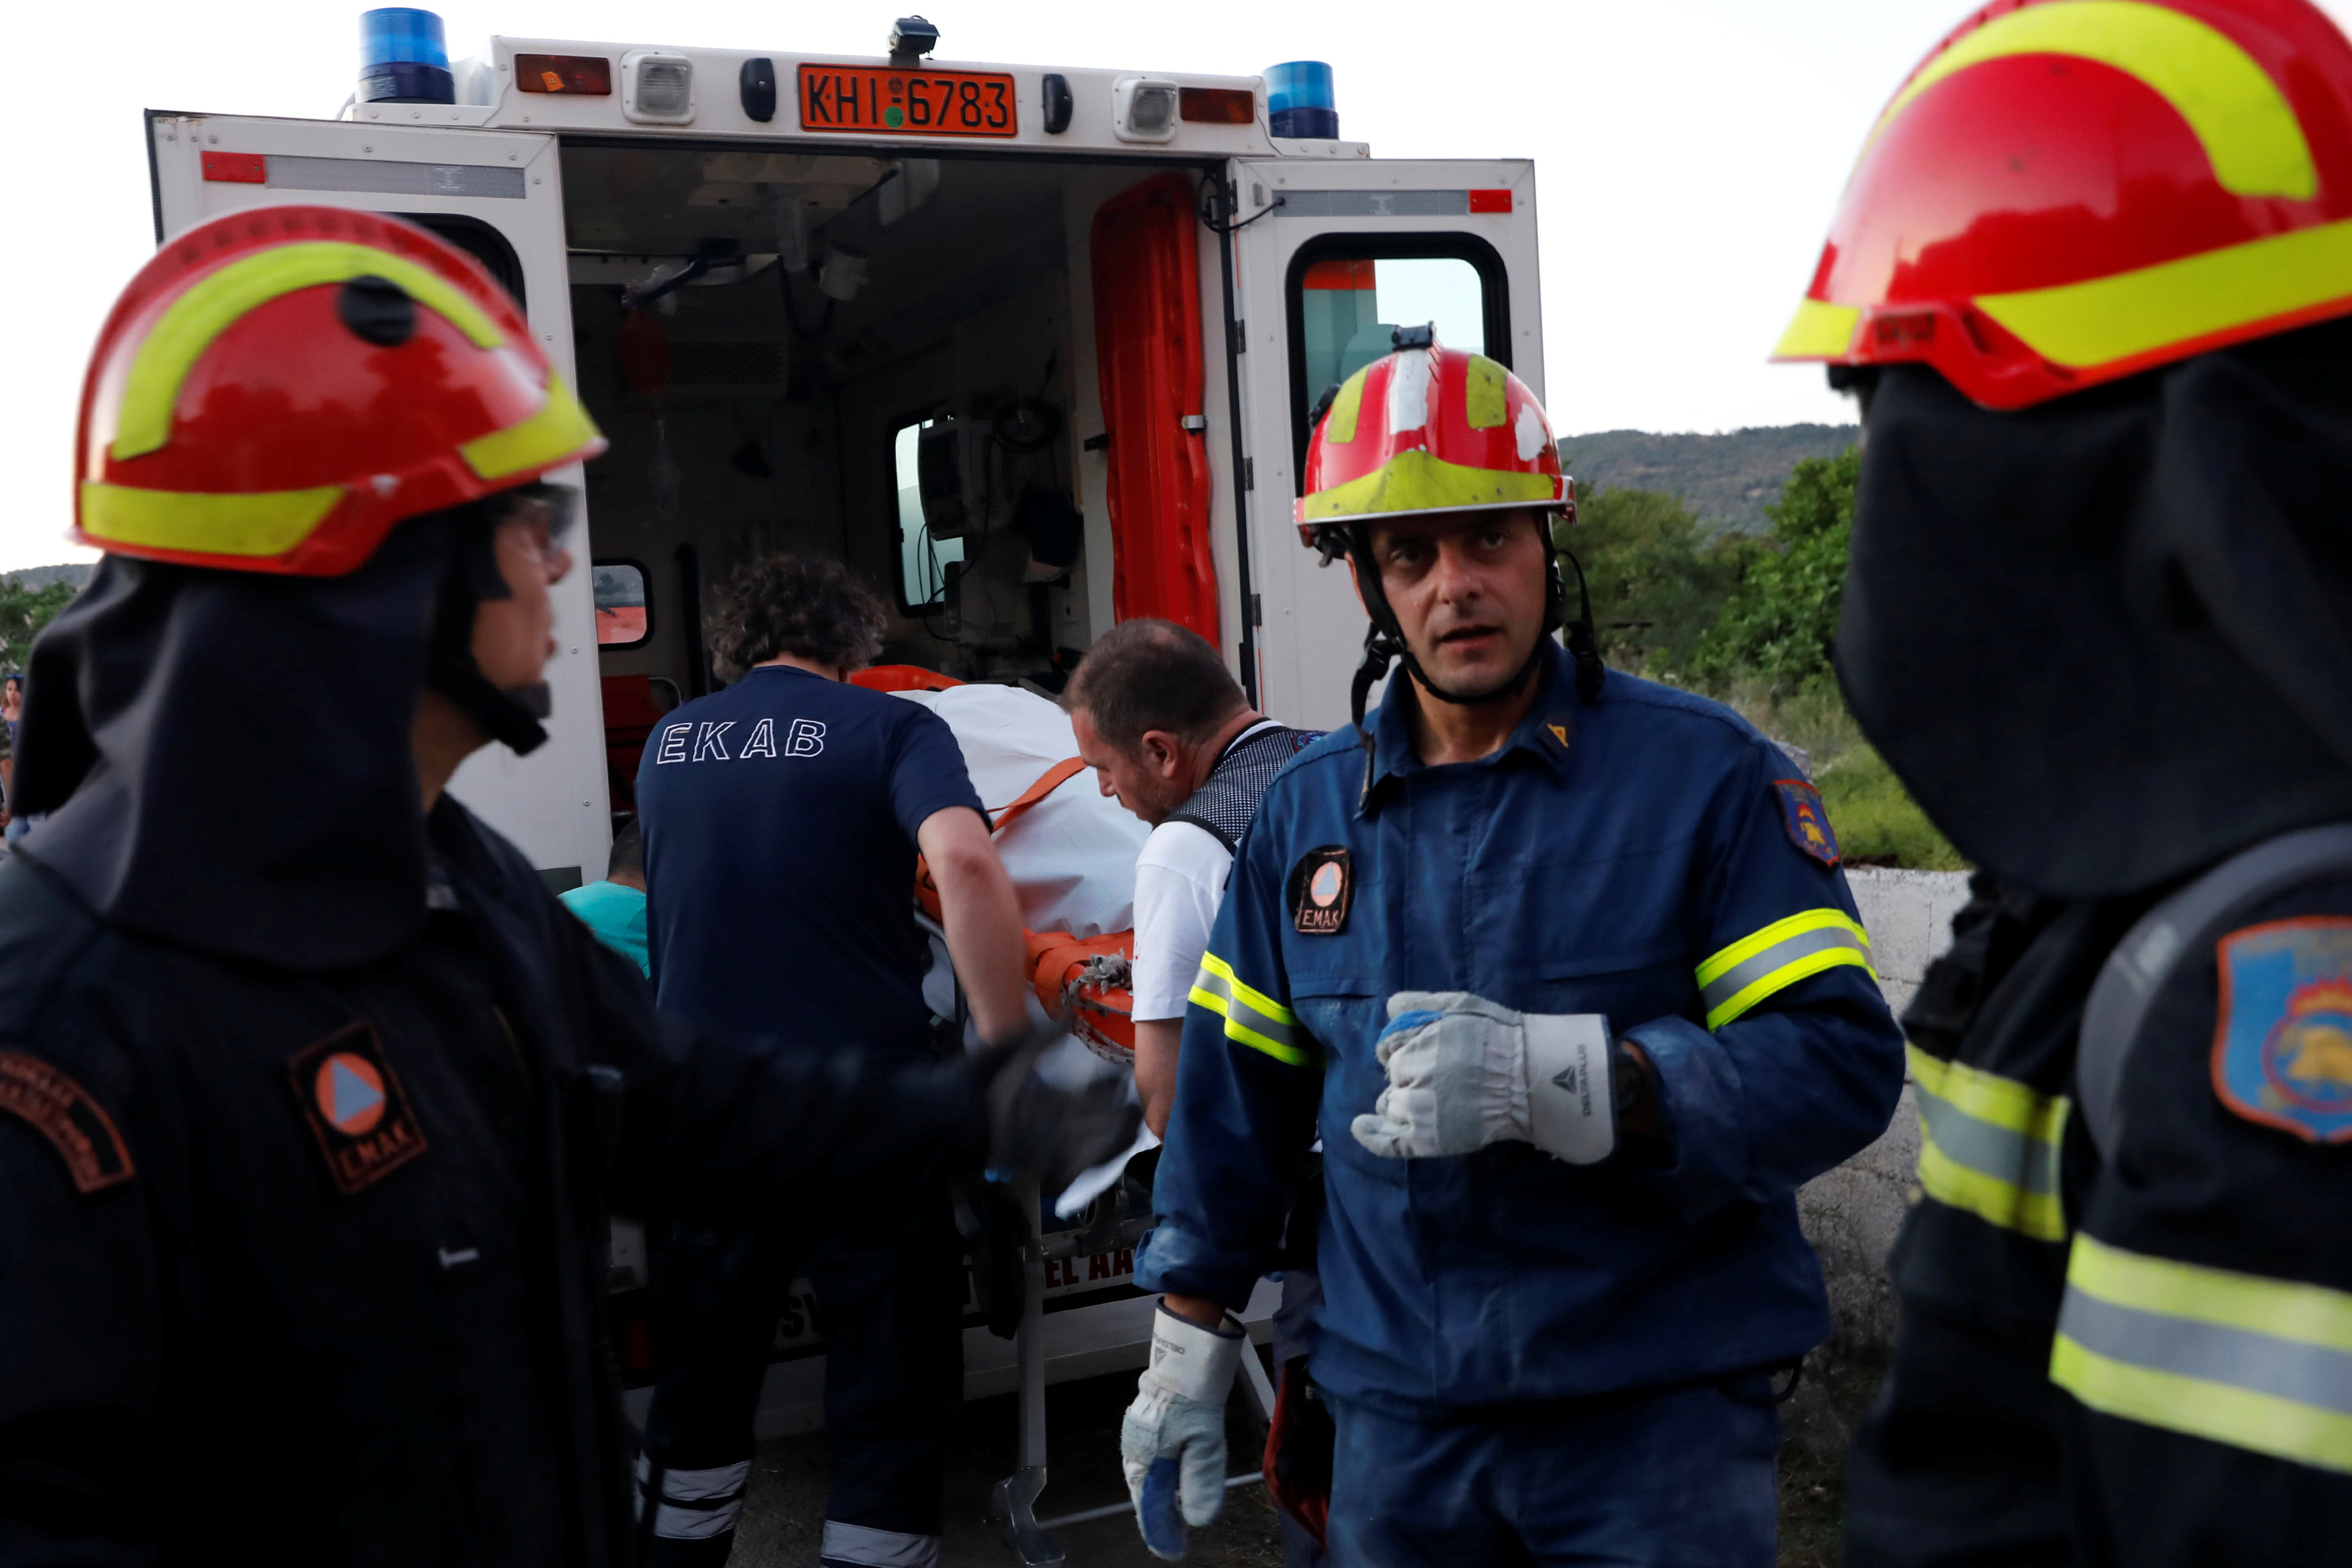 Rescue team members carry the body of a victim onto a ambulance, at the village of Vrissa on the Greek island of Lesbos, Greece, after a strong earthquake shook the eastern Aegean on June 12, 2017. (REUTERS/Giorgos Moutafis)